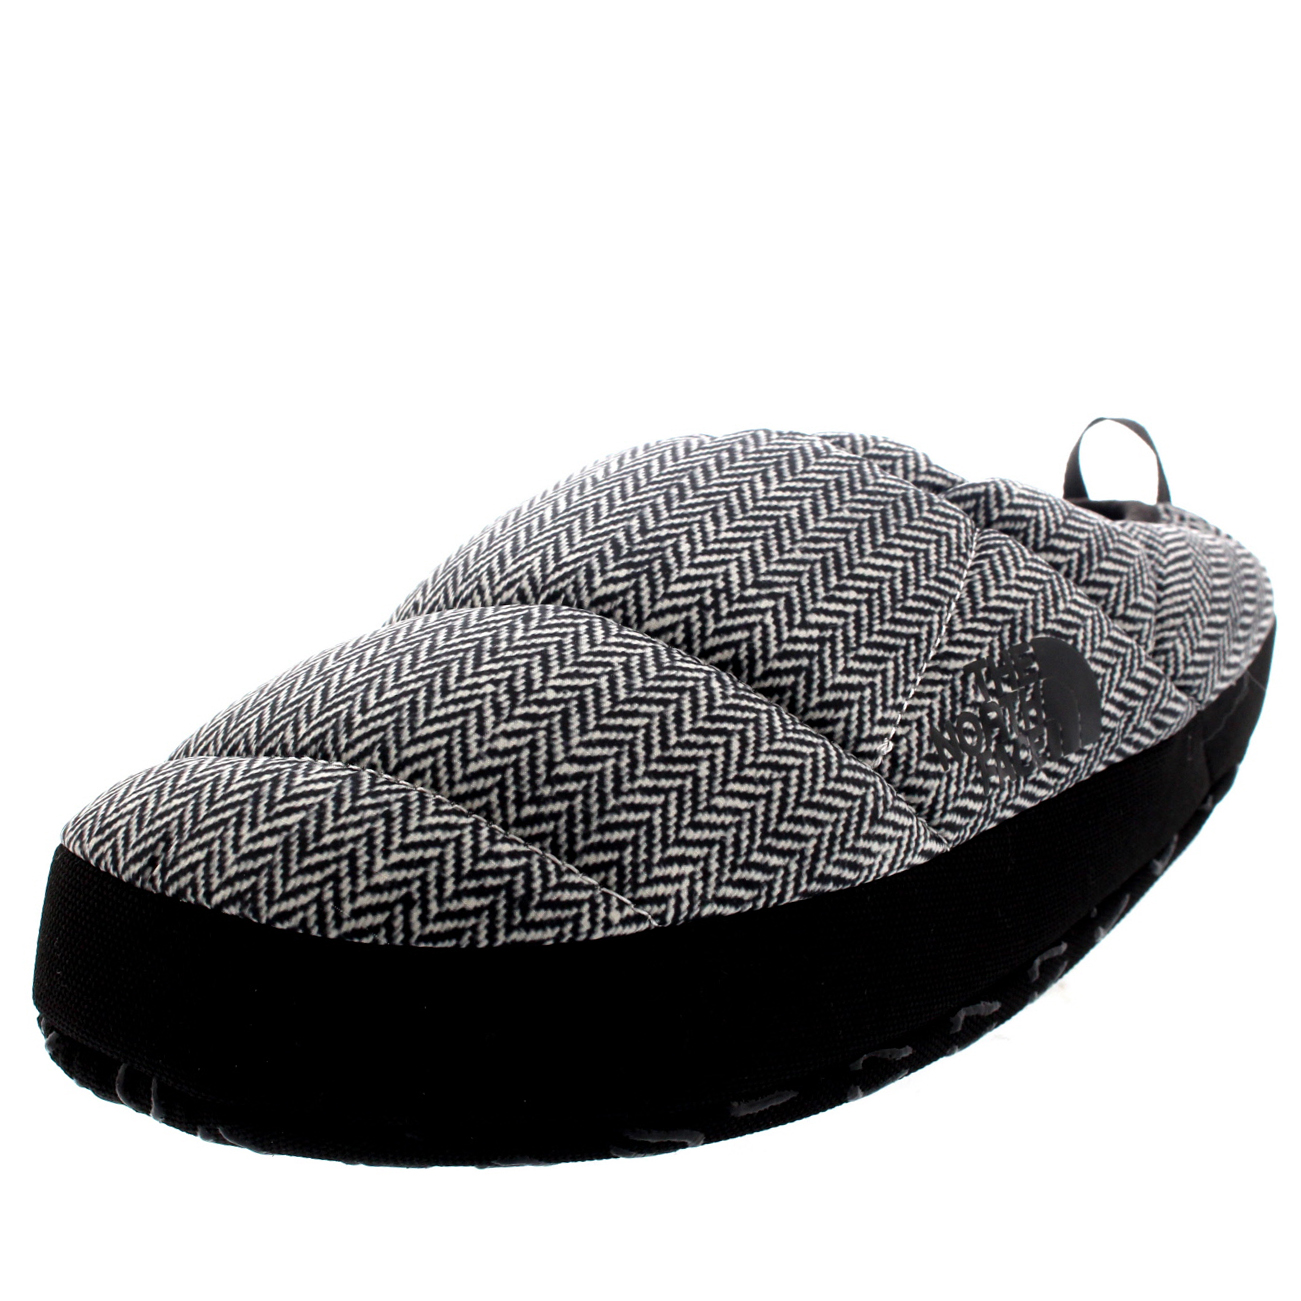 f8a89f50e The North Face Nse Tent Mule III Slipper